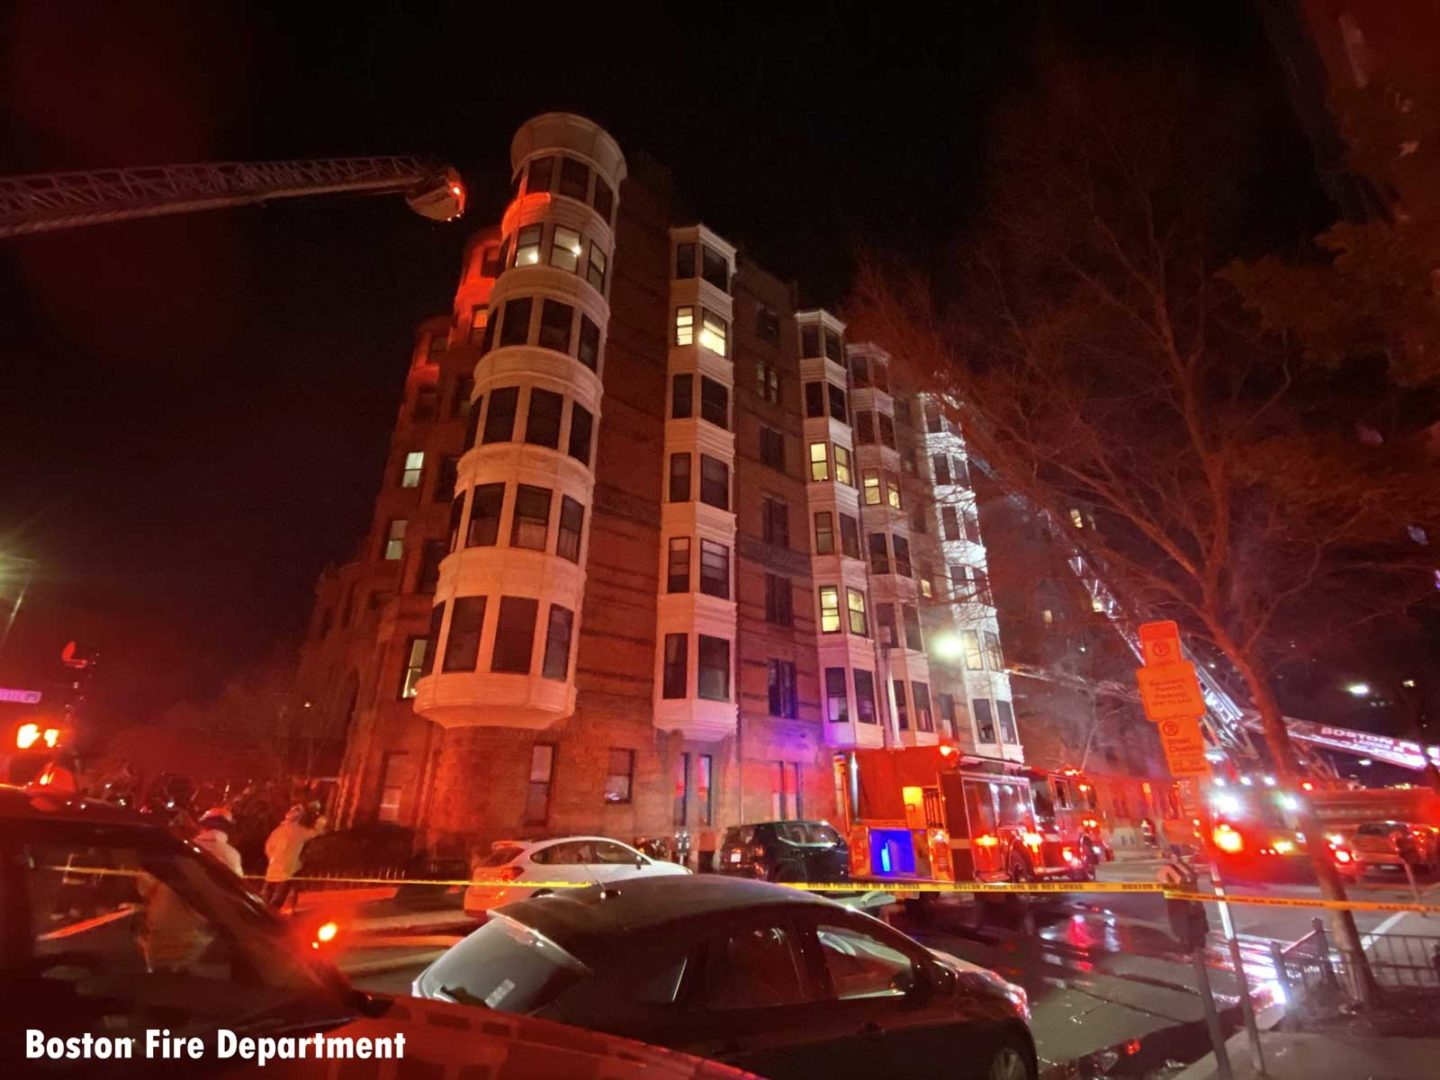 Scene of the fire in Boston with ladders raised